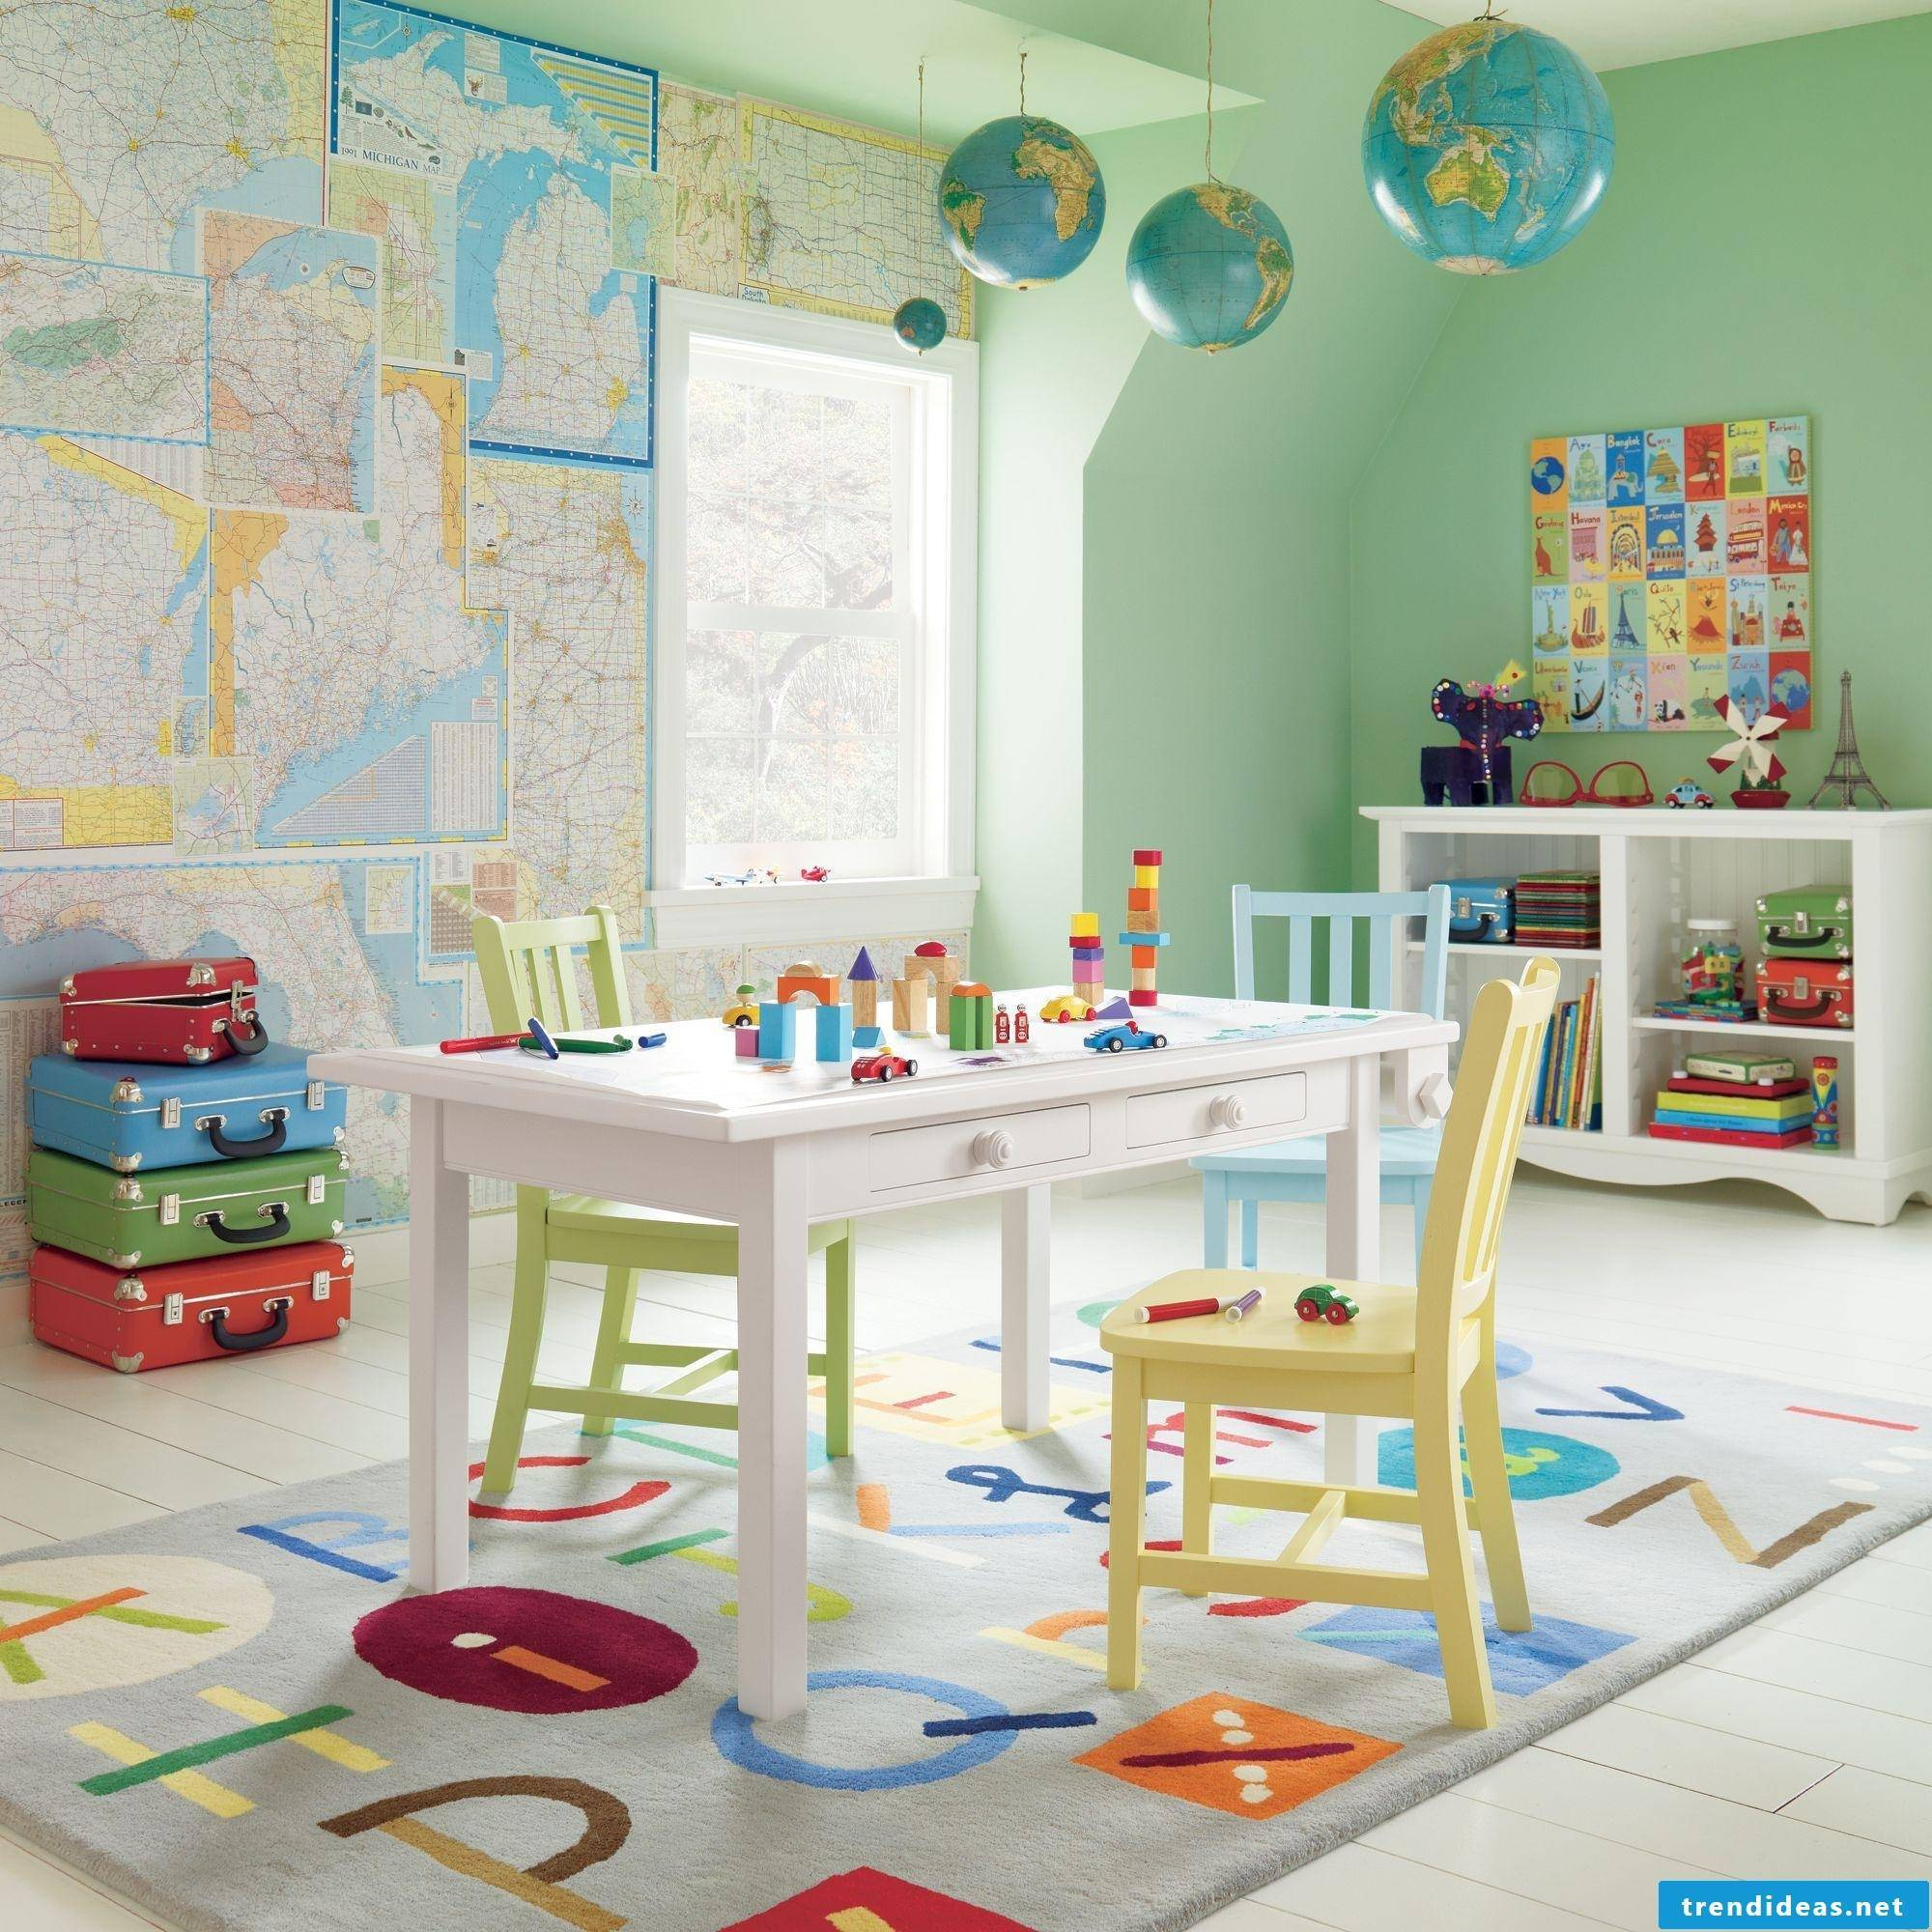 Youth and children's room for world travel lovers